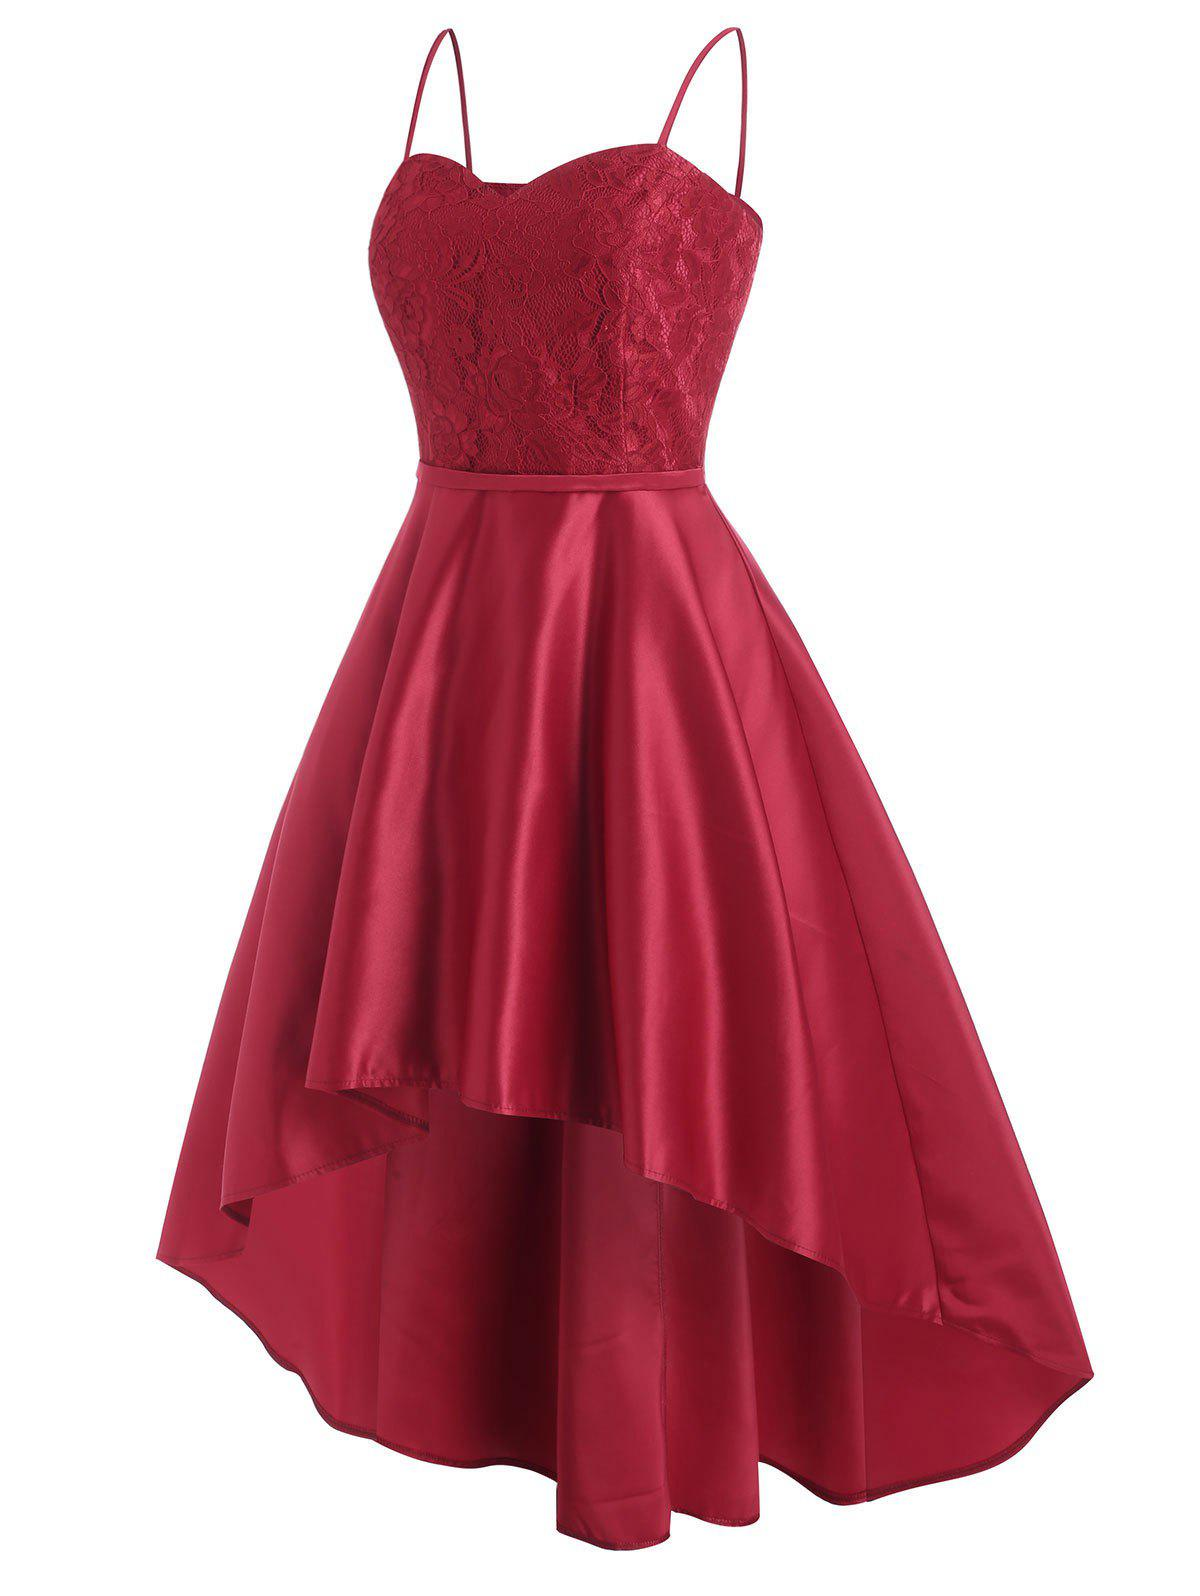 Flower Lace High Low Midi Party Dress - RED 2XL